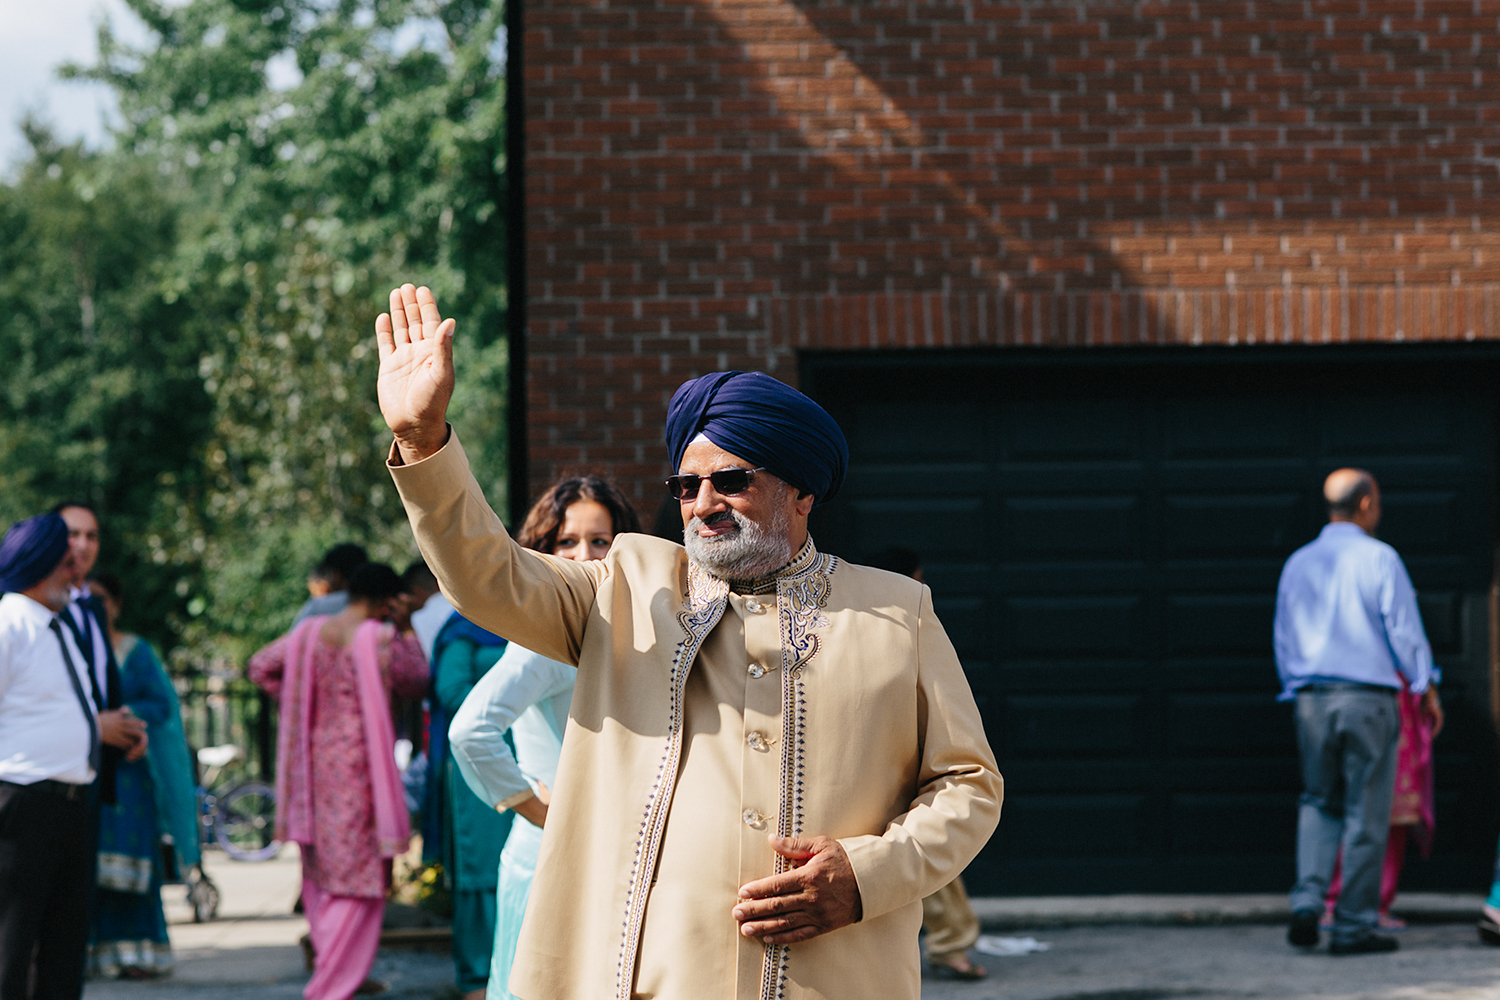 Toronto's-Best-Film-Wedding-Photographers-Multicultural-wedding-specialty-ontario-port-perry-candid-documentary-film-analog-photography-120-35mm-send-off-emmotional-bride-crying-happiness-goodbye-leaving-in-car-dad-waving.jpg